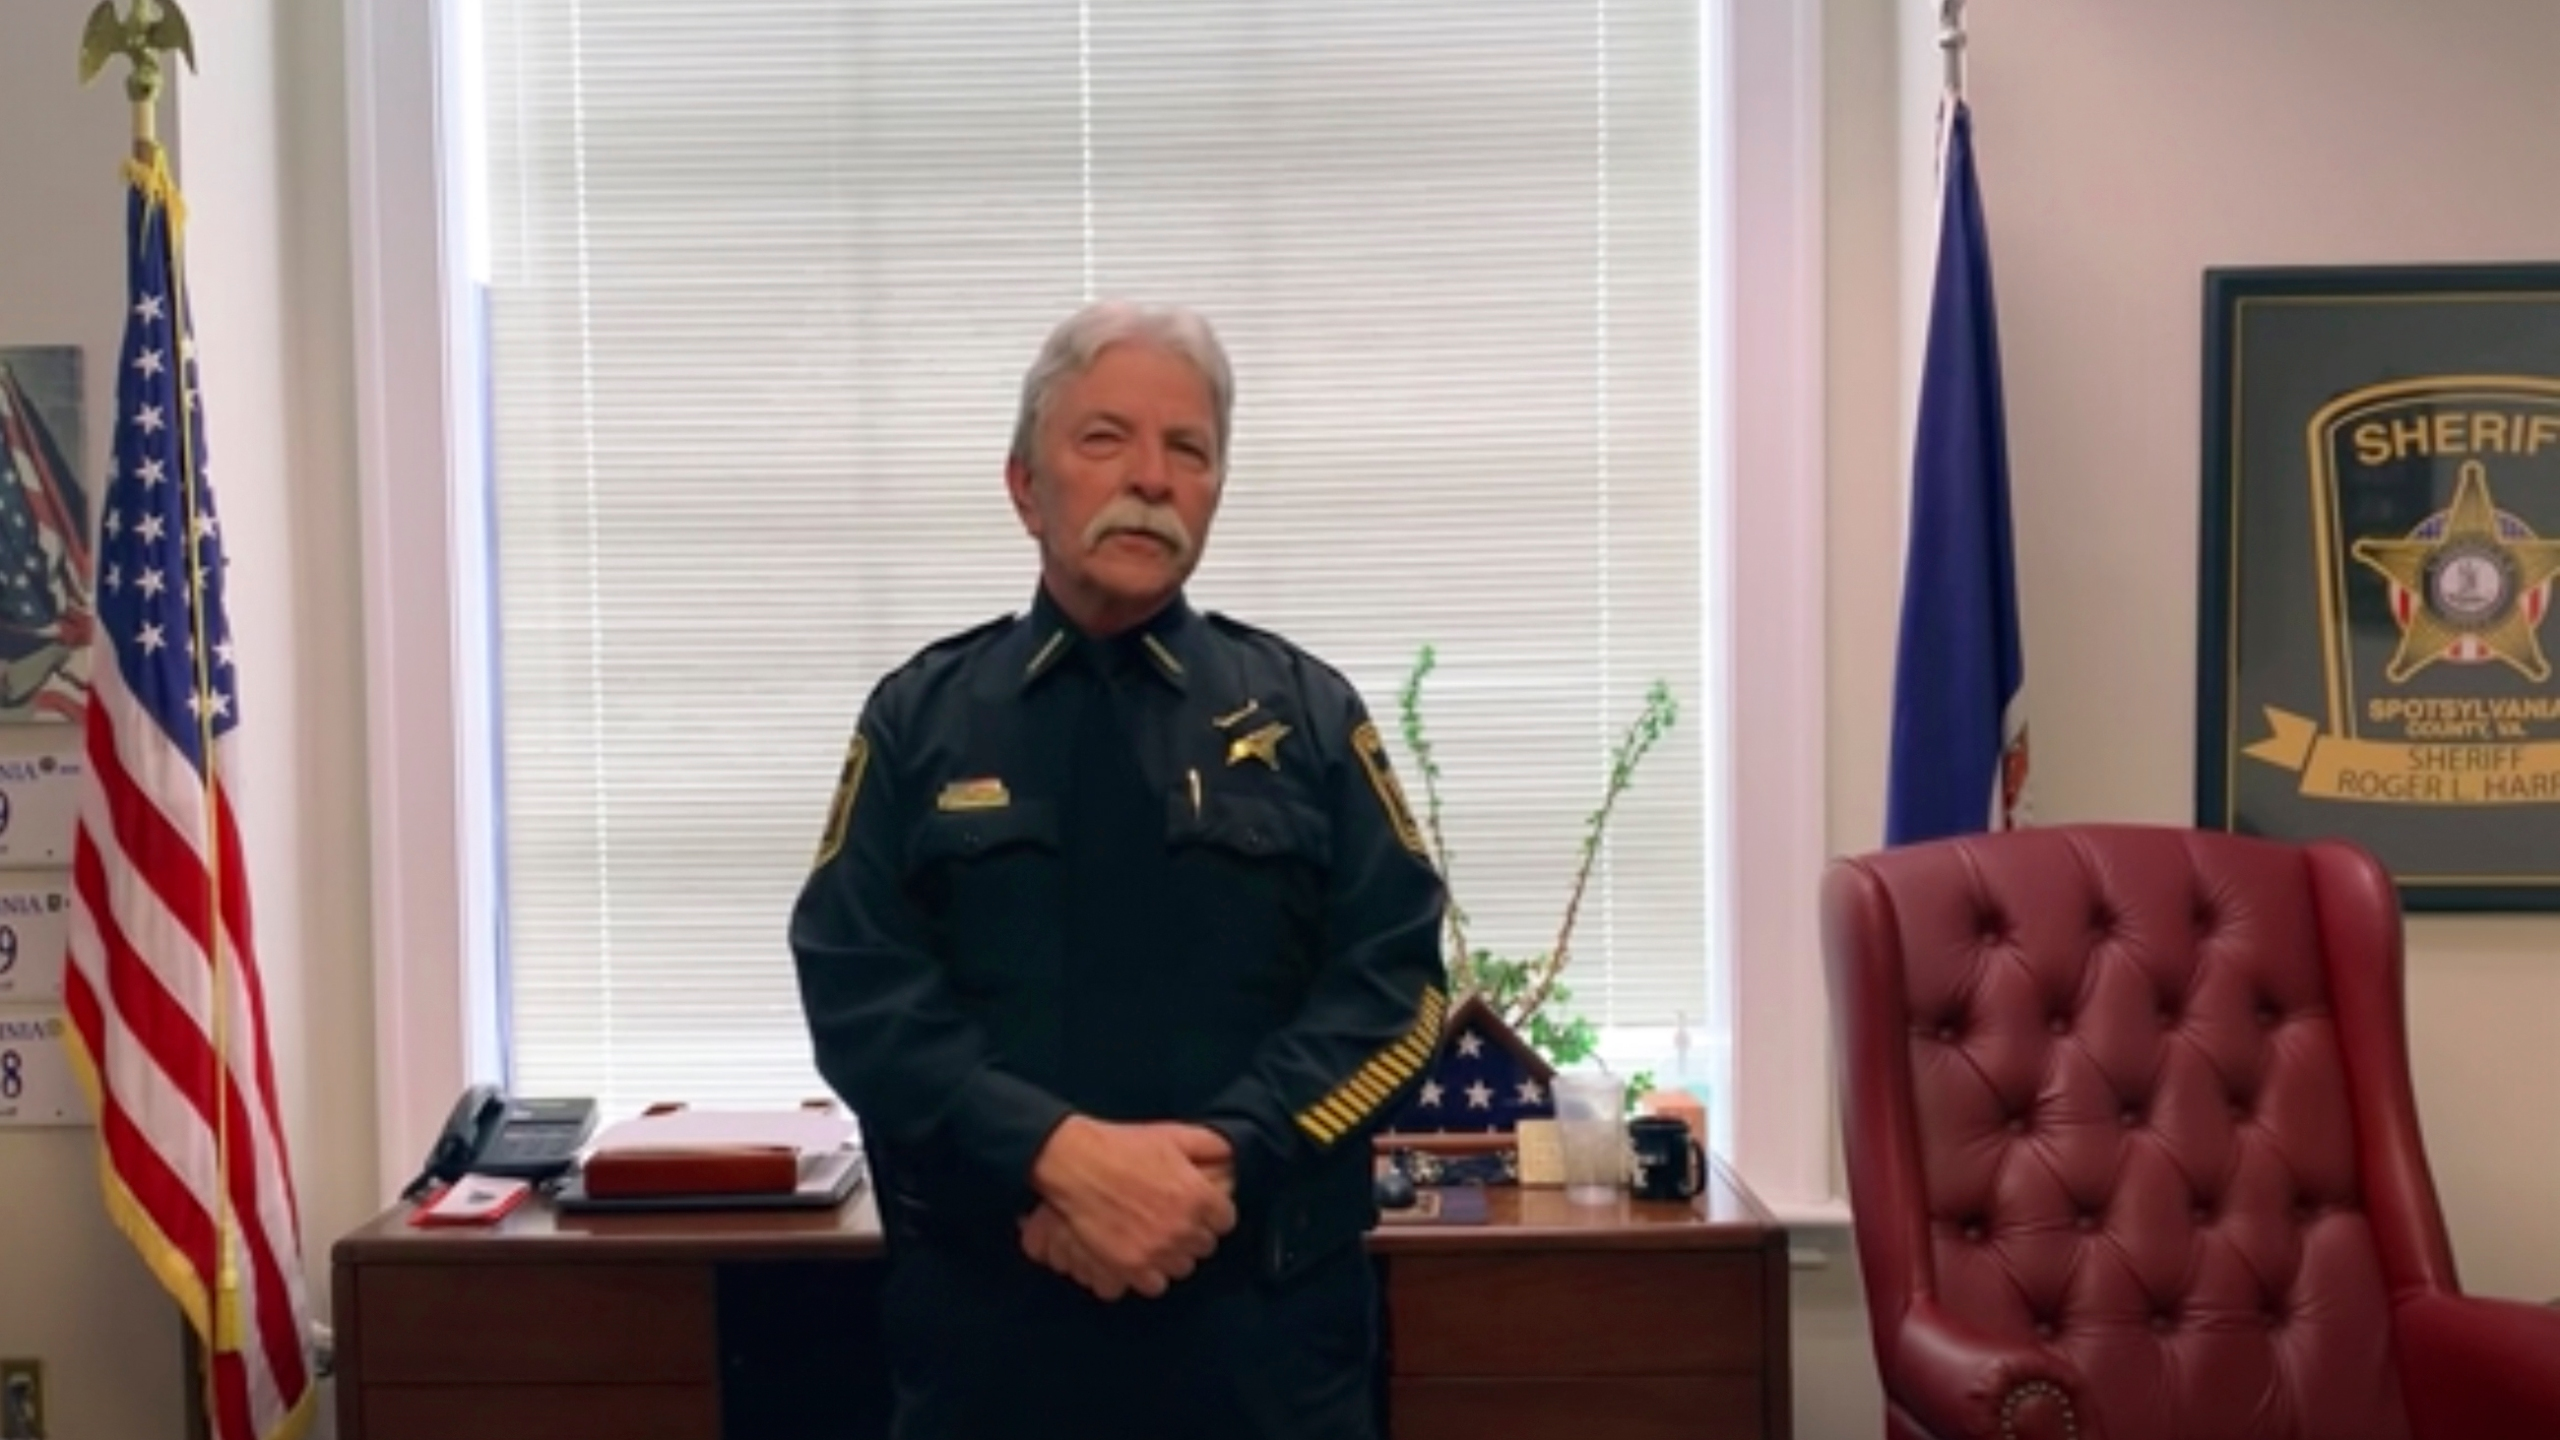 This photo provided by Spotsylvania County Sheriff's Office shows Spotsylvania County Sheriff Roger Harris explaining the Body camera footage and 911 audio released late Friday, April 23, 2021, that appeared to show that a Virginia deputy mistook a cordless house phone held by a Black man for a gun before the deputy shot him repeatedly. Family members said Isaiah Brown, 32, was in intensive care with 10 bullet wounds following the shooting outside a home in Spotsylvania County, Va., early Wednesday, (Spotsylvania County Sheriff's Office via AP)